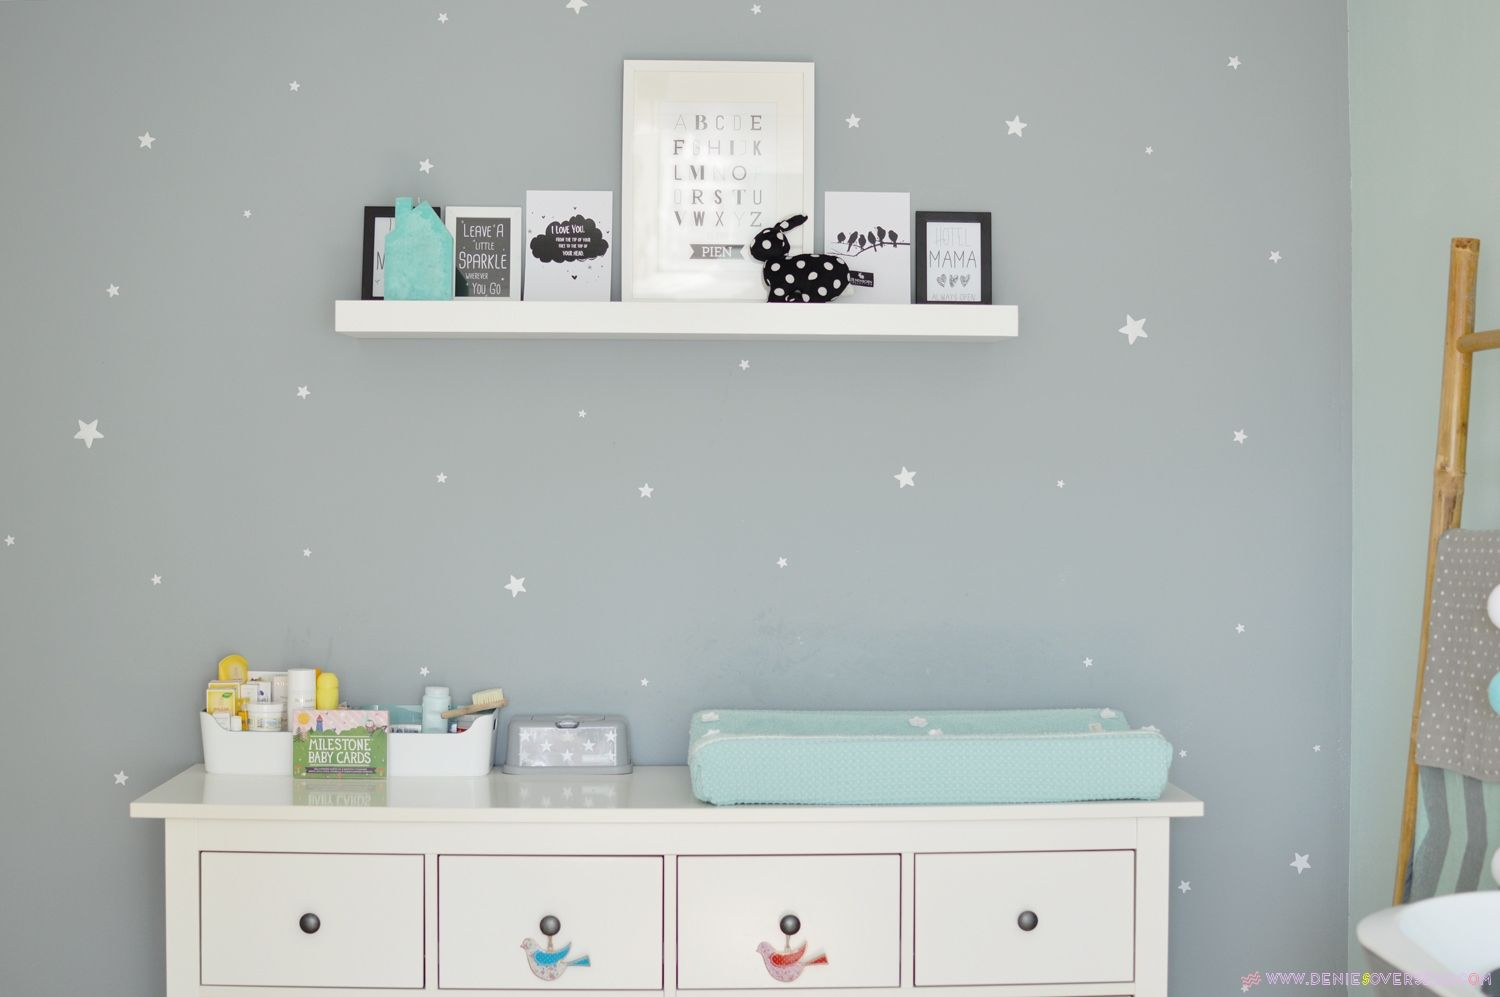 Decoratie Ladder Babykamer 23 Mooi Kinderkamer Decoratie Mintgroen Deko In 2019 Baby Boy